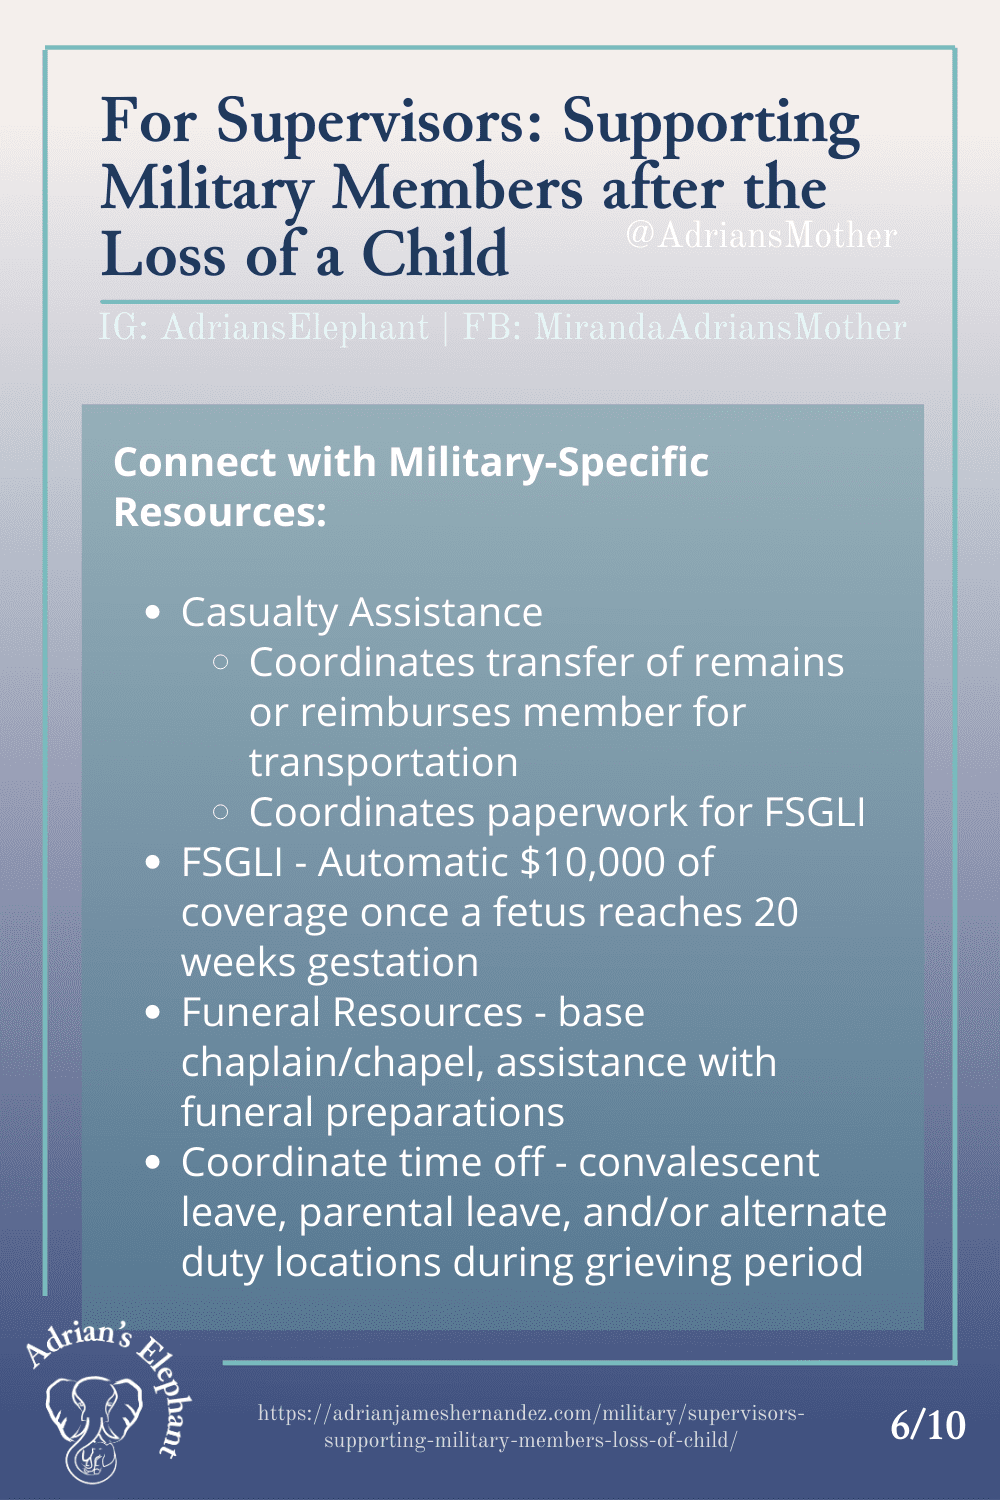 For Supervisors: Supporting Military Members after the Loss of a Child - Connect with Military-Specific Resources: - Casualty Assistance --- Coordinates transfer of remains or reimburses member for transportation --- Coordinates paperwork for FSGLI - FSGLI - Automatic $10,000 of coverage once a fetus reaches 20 weeks gestation - Funeral Resources - base chaplain/chapel, assistance with funeral preparations - Coordinate time off - convalescent leave, parental leave, and/or alternate duty locations during grieving period (6/10)